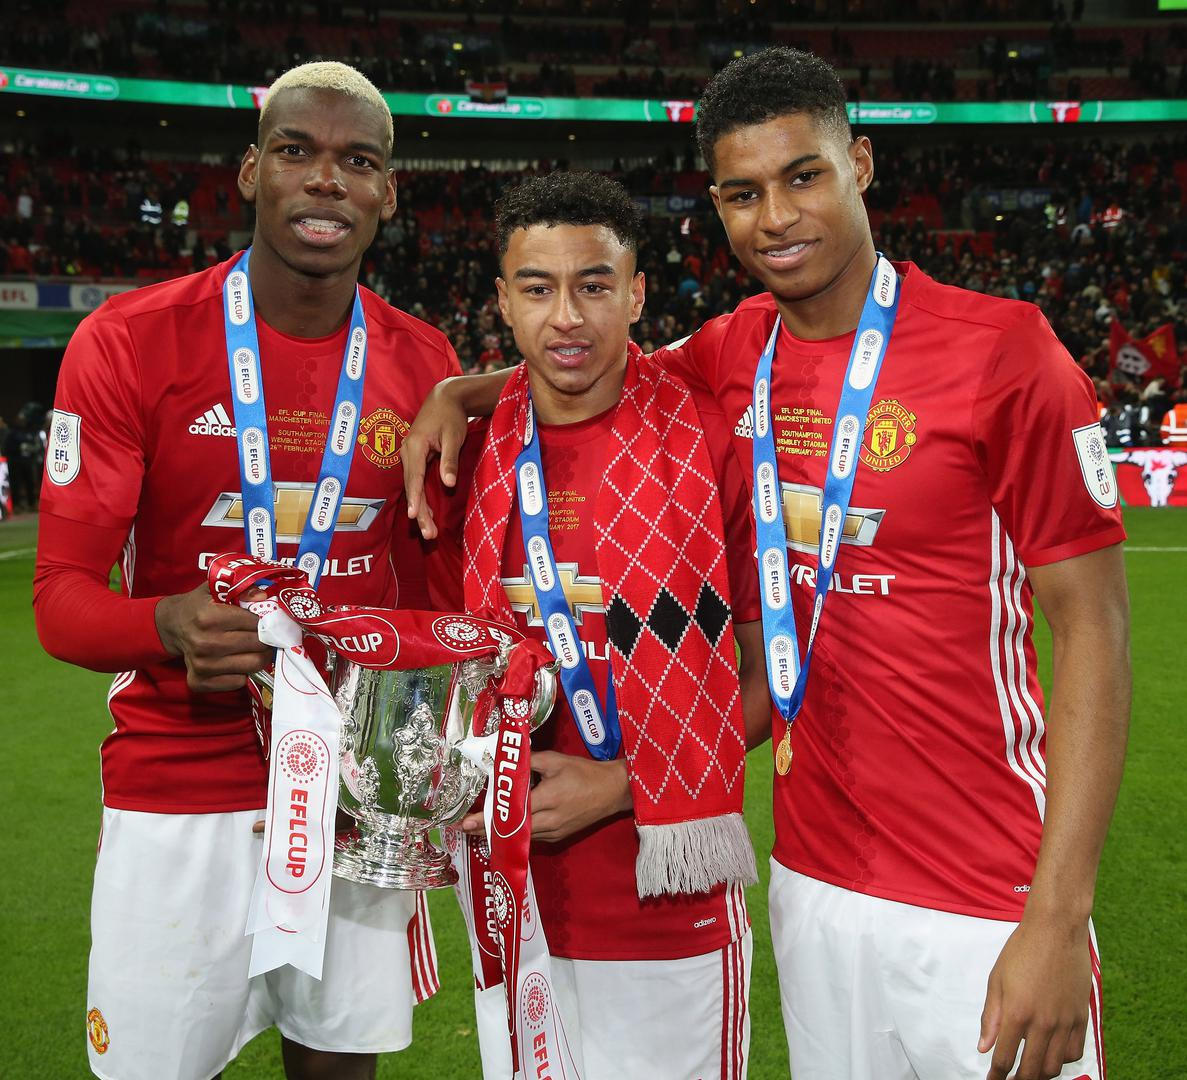 Paul Pogba, Jesse Lingard and Marcus Rashford with the League Cup in 2017.